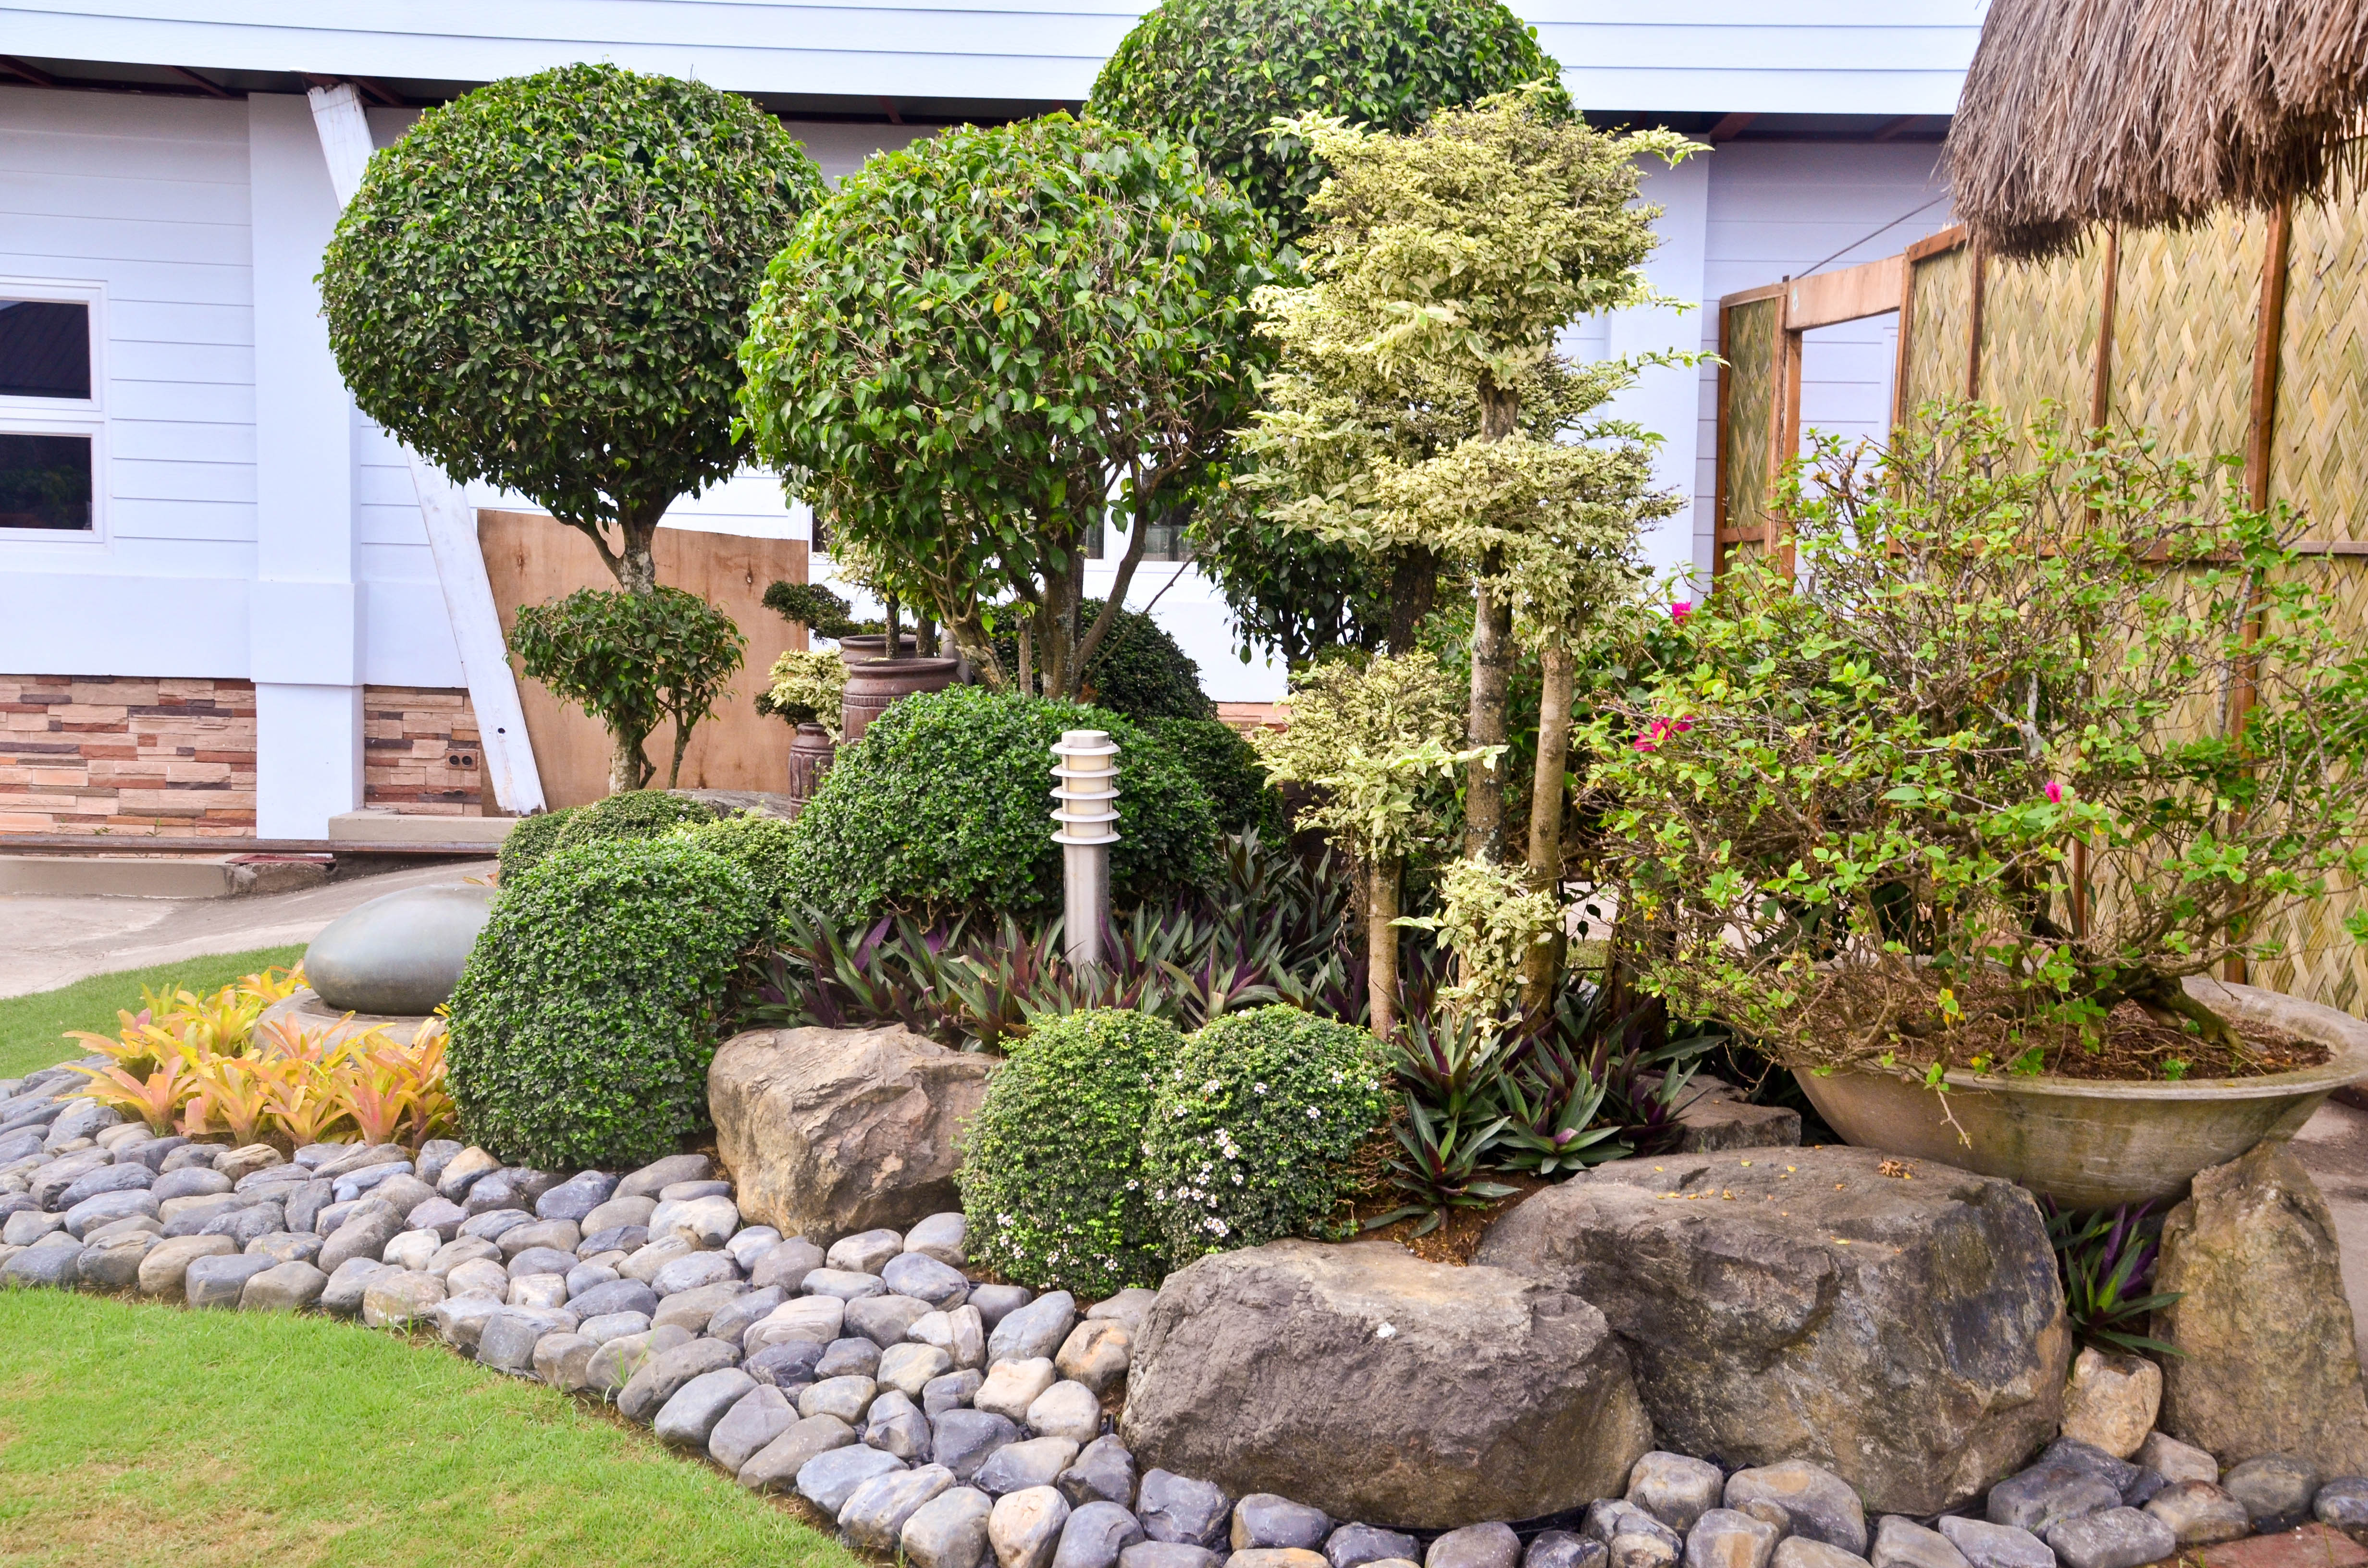 Boulders for Large Landscape Rocks - HomesFeed on Small Garden Ideas With Rocks id=66791